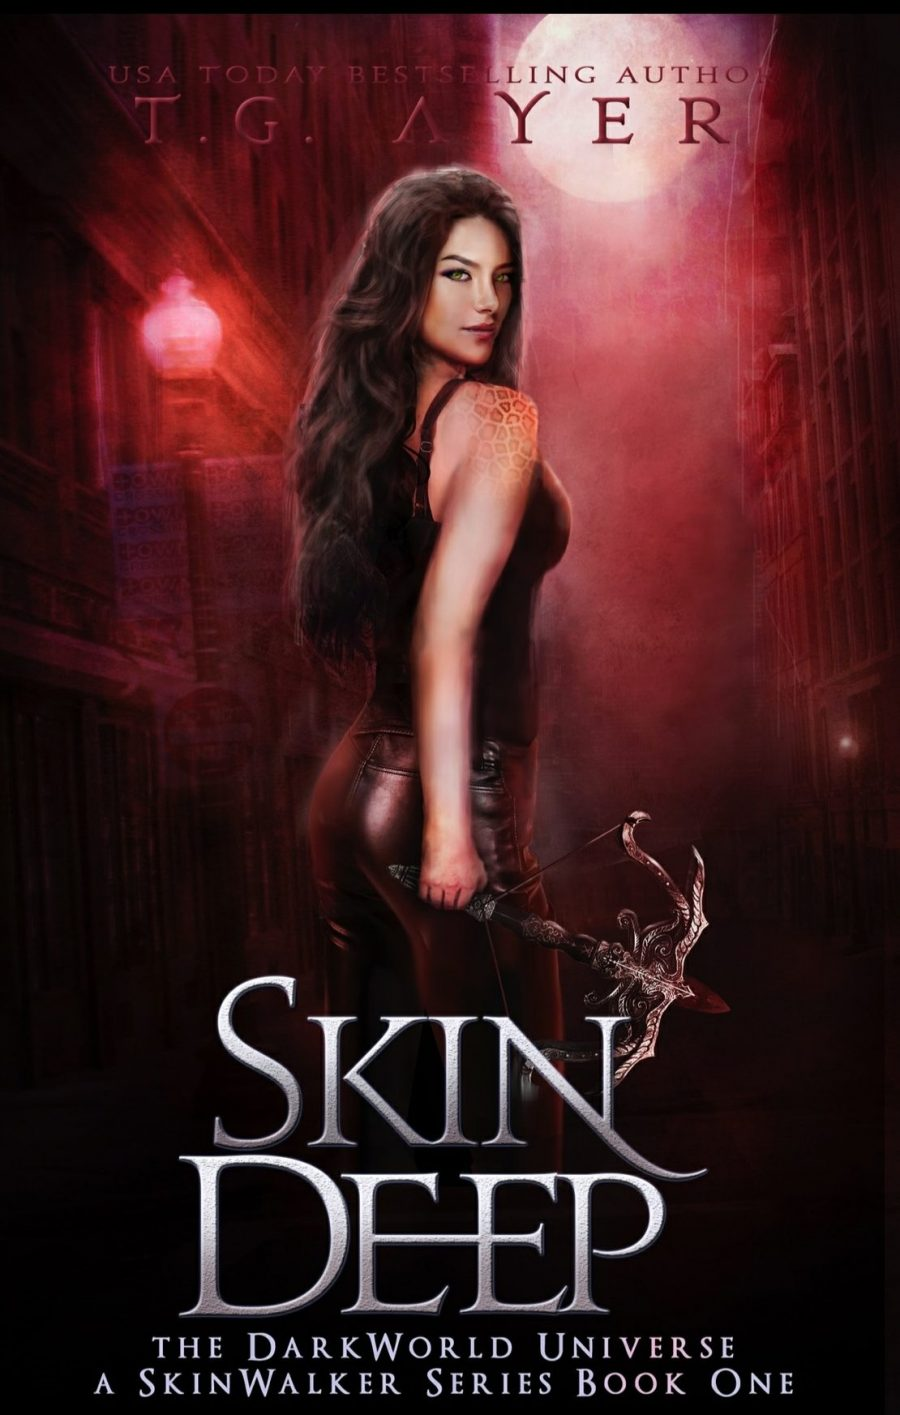 Skin Deep by T.G. Ayer – A Book Review